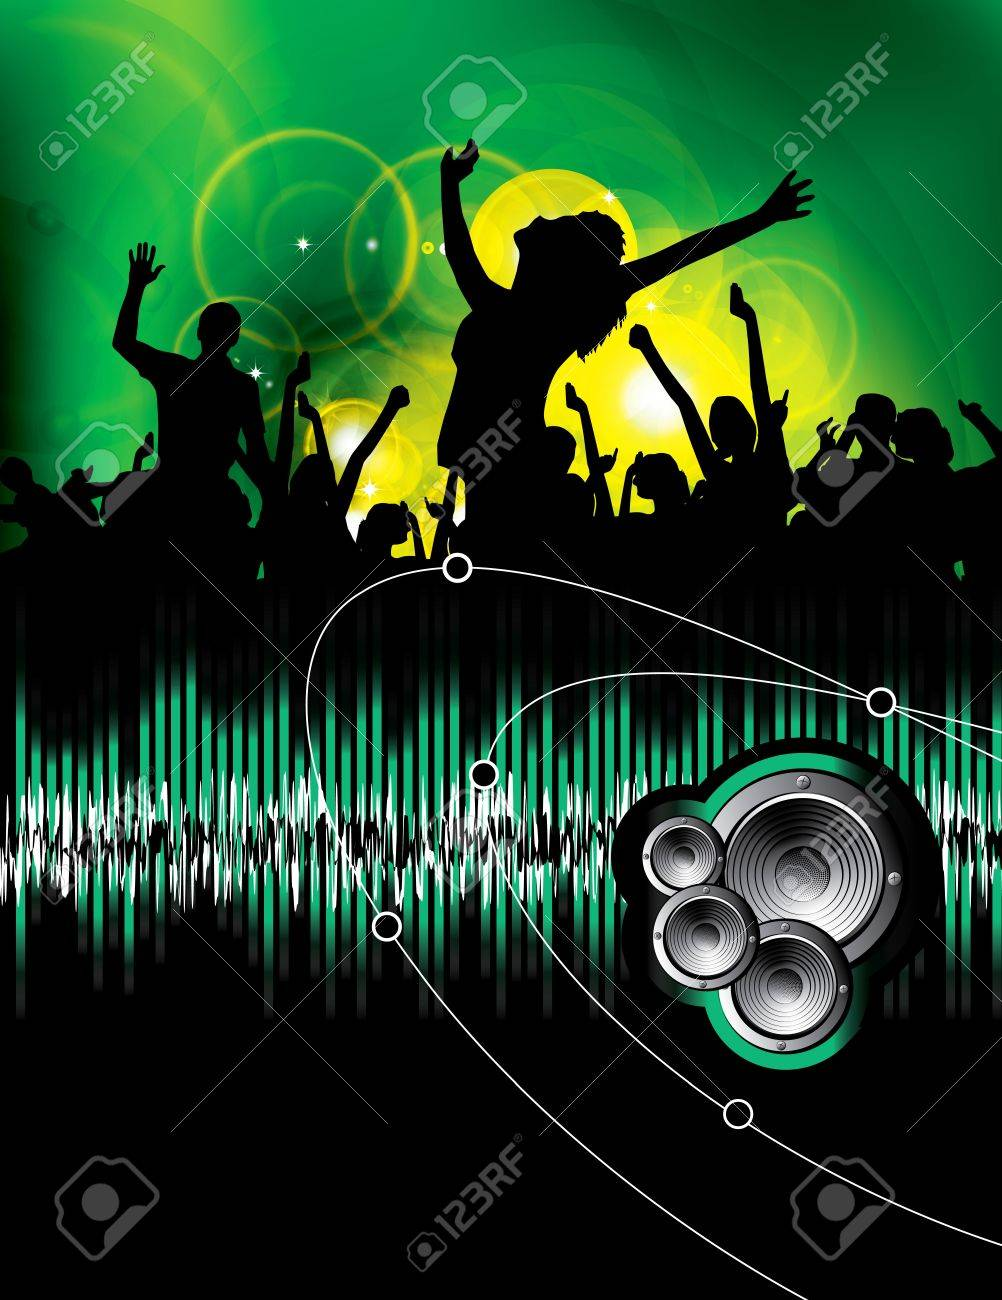 Party People Vector Background Stock Vector - 9819923